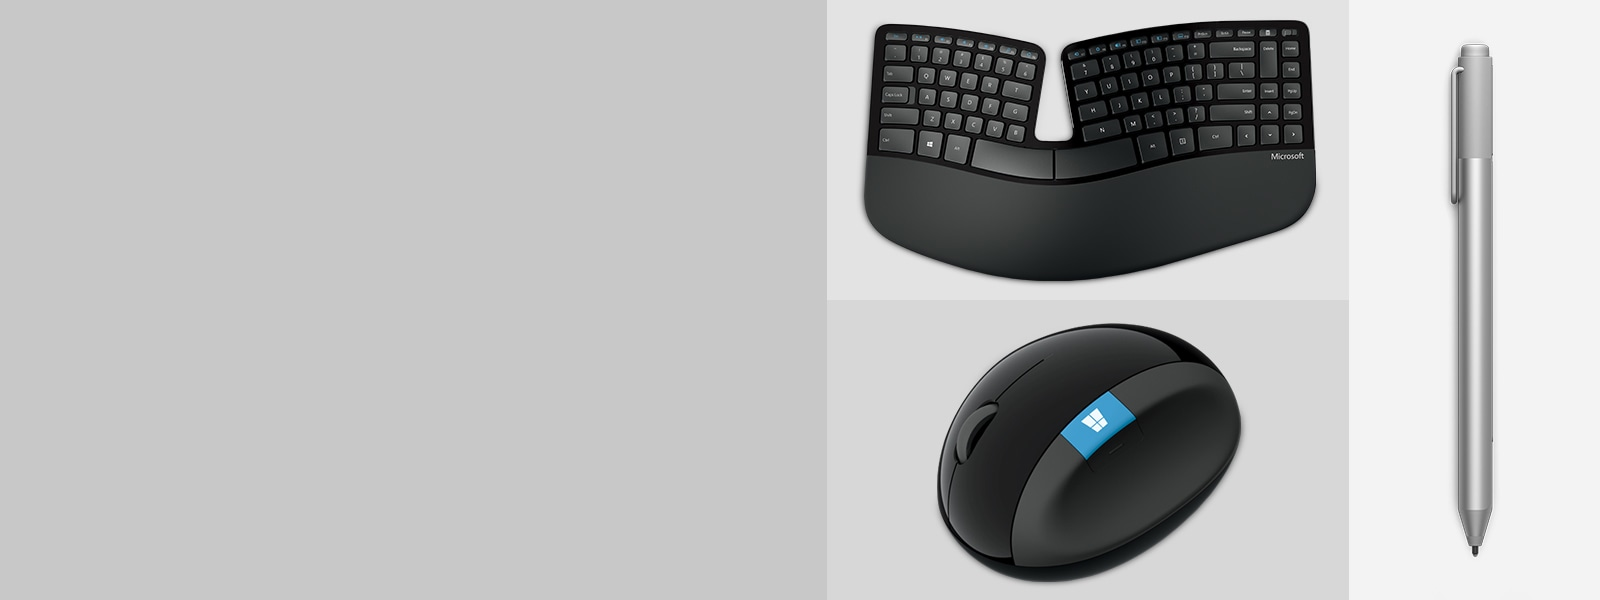 Computer accessories showcasing a mouse keyboard and surface pen